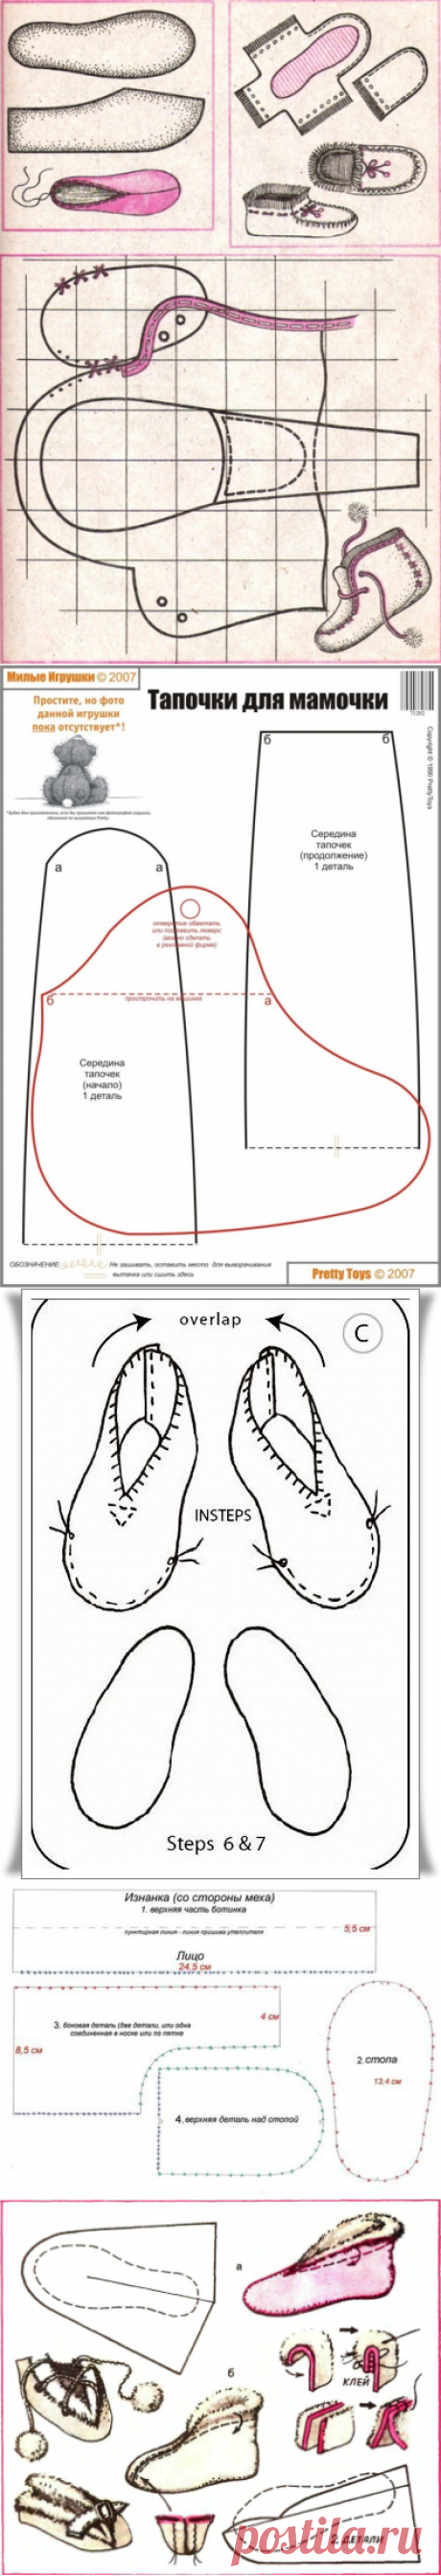 How to sew slippers from an old sheepskin coat the hands? - Useful information for all